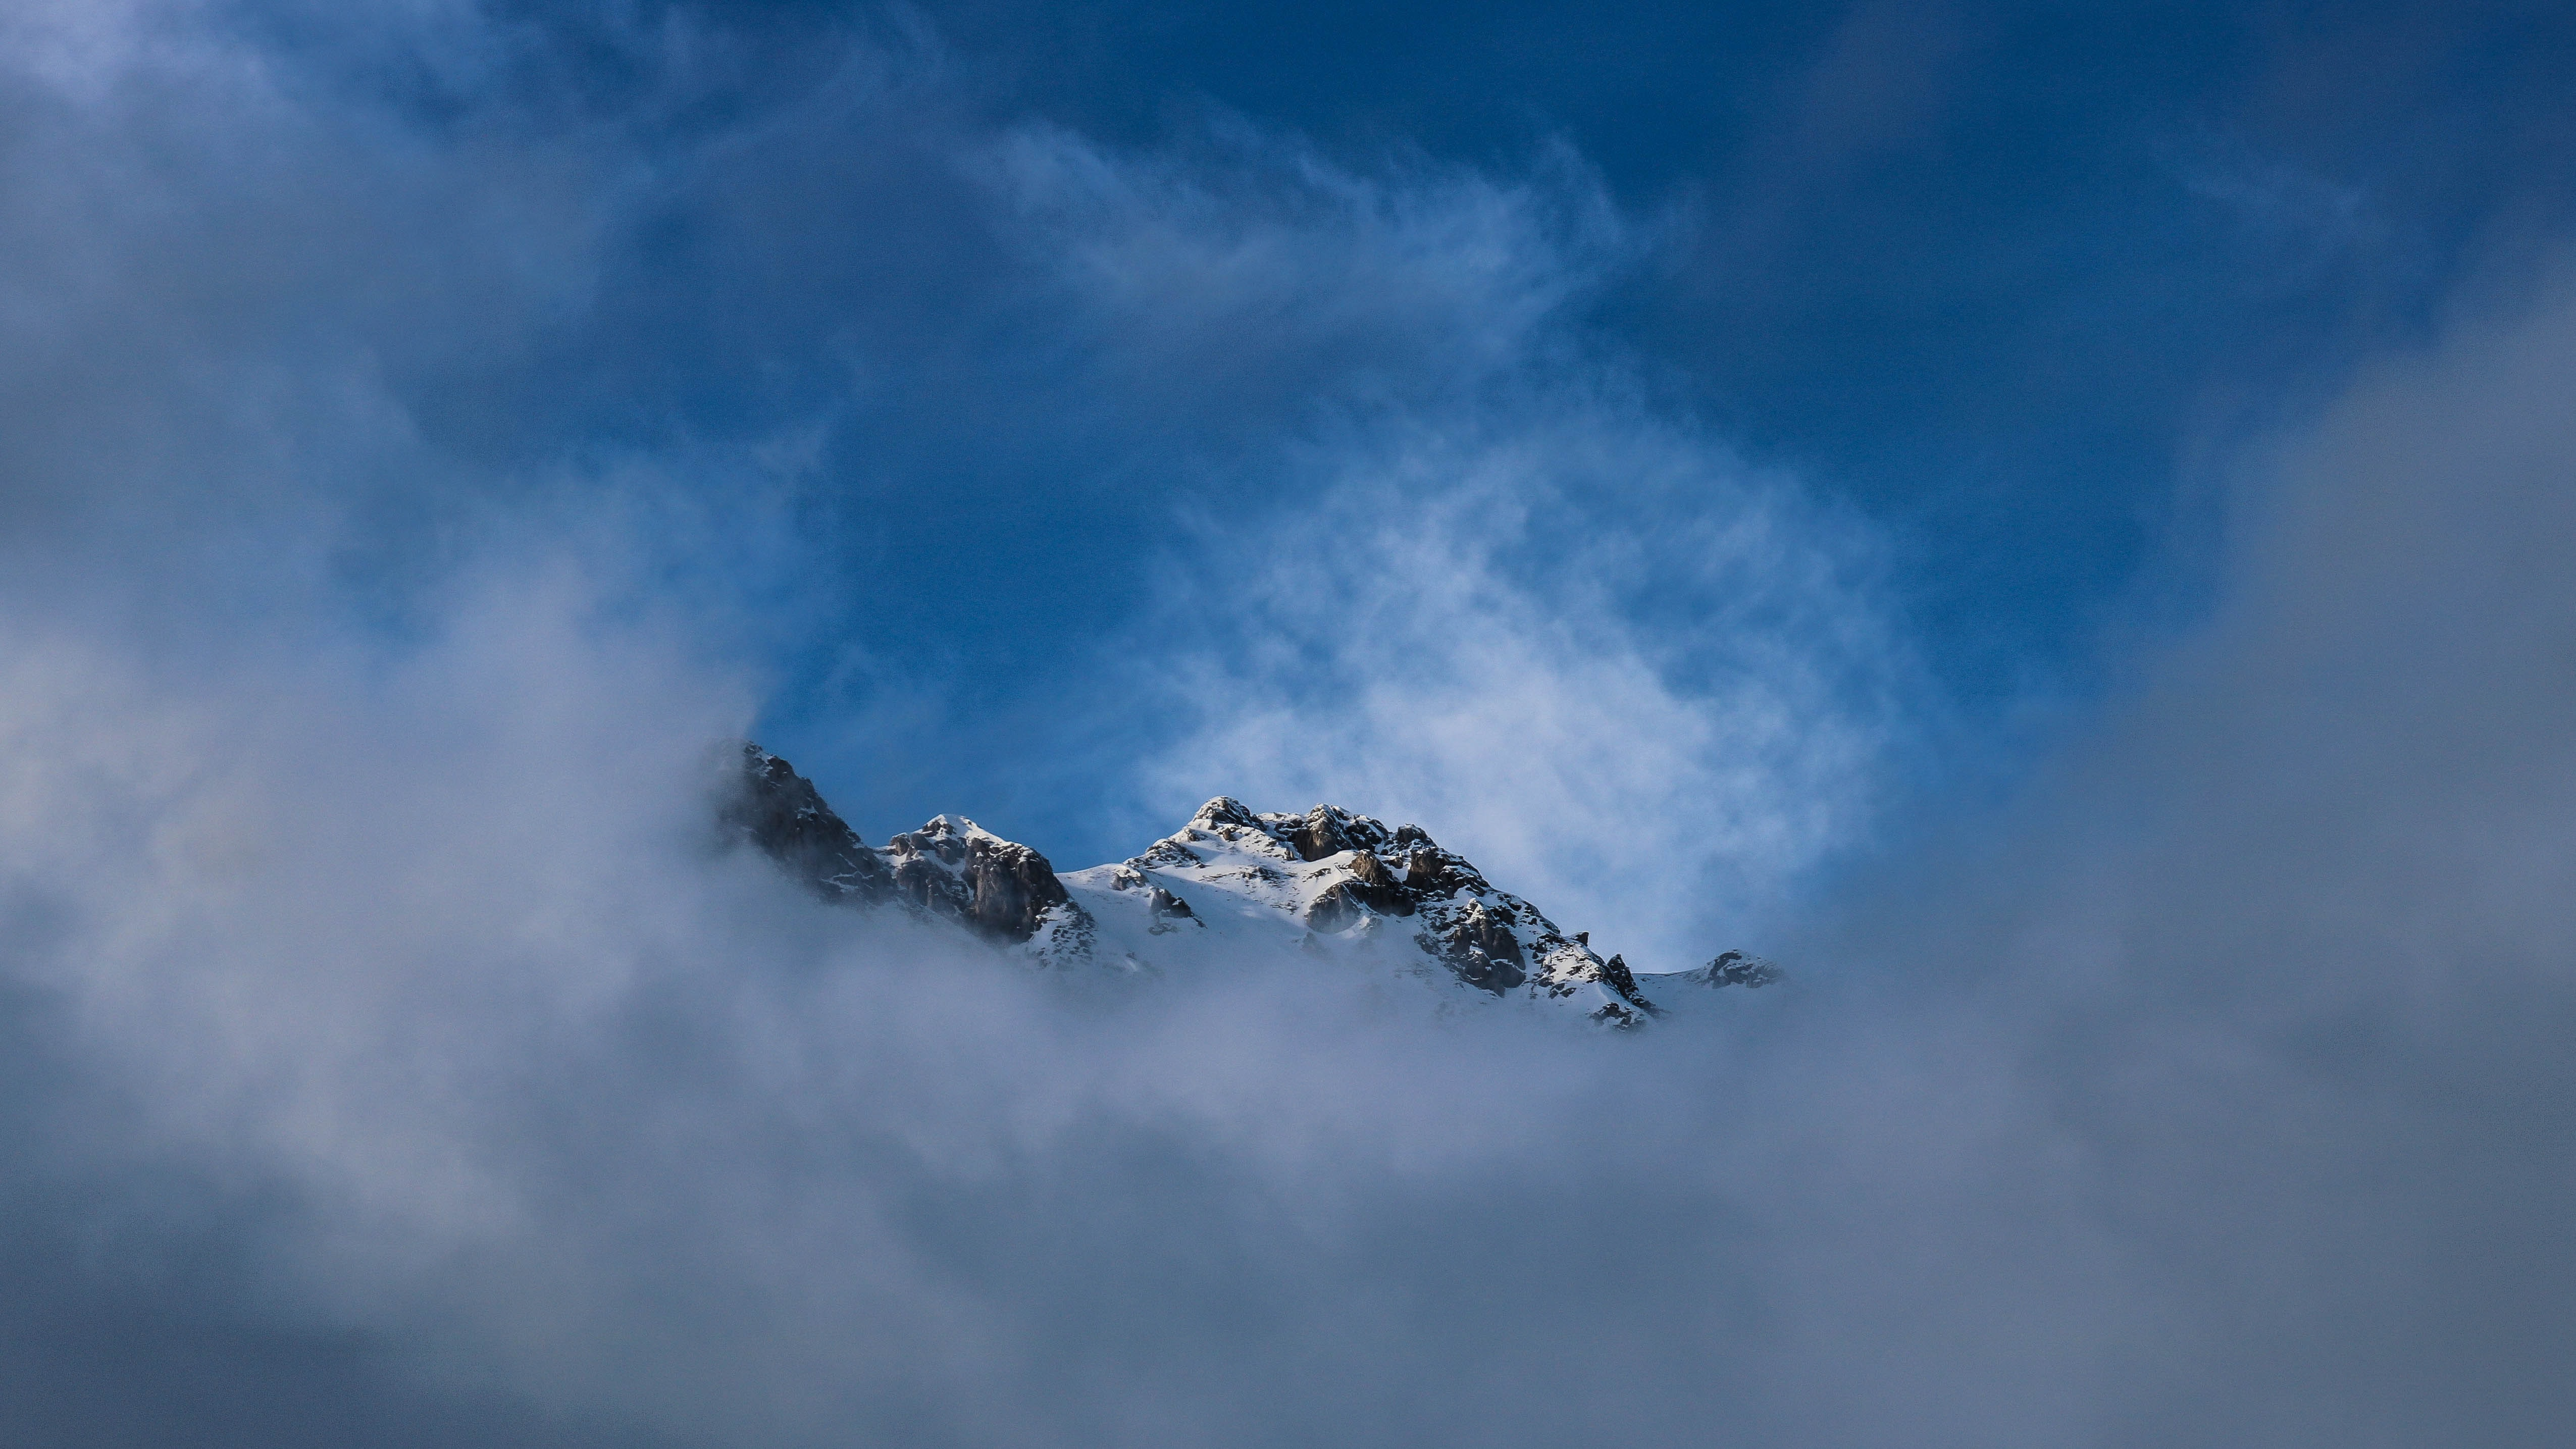 snow top mountain covered with fog during daytime